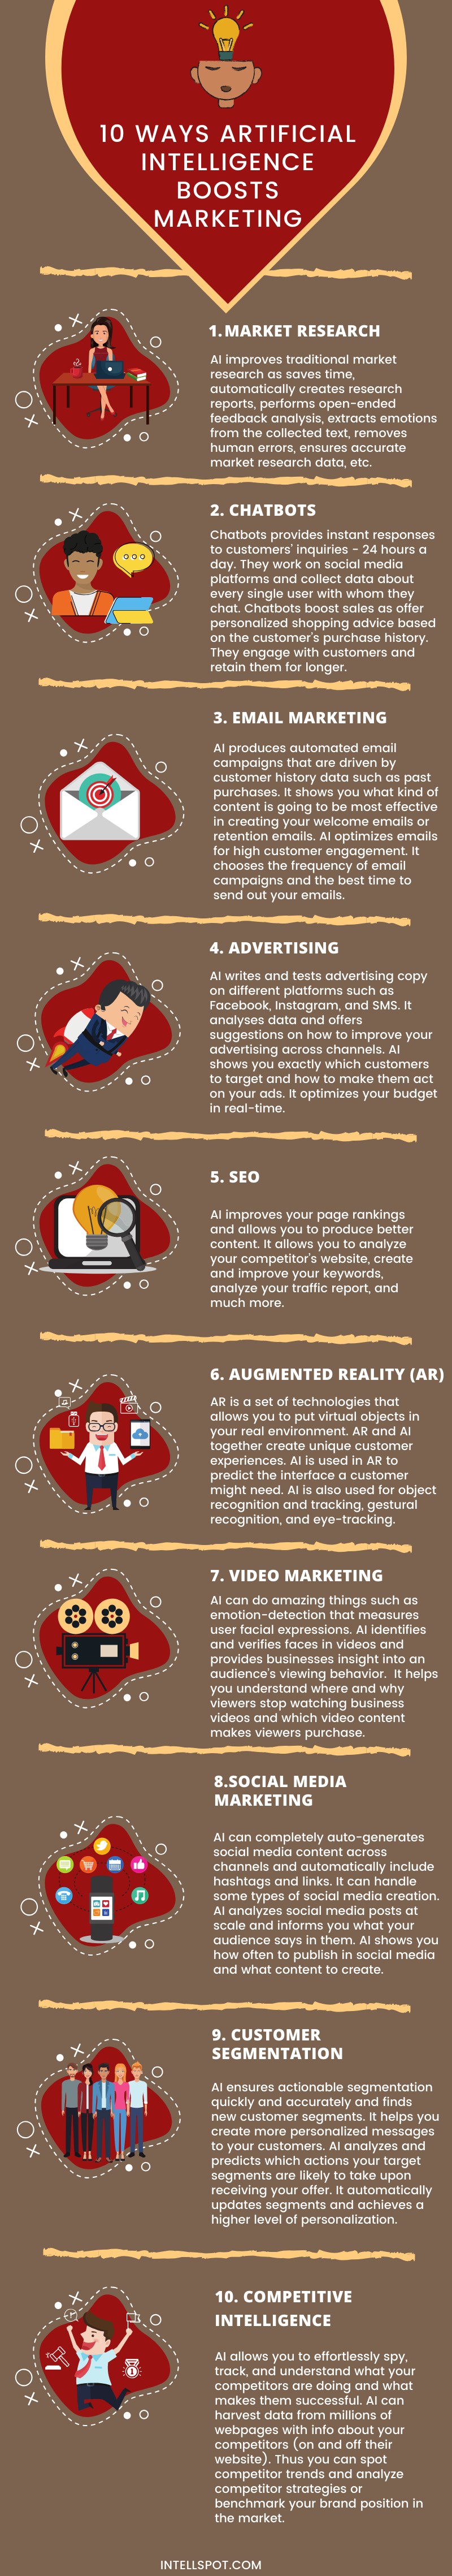 Ways Artificial Intelligence Improves Marketing - Infographic